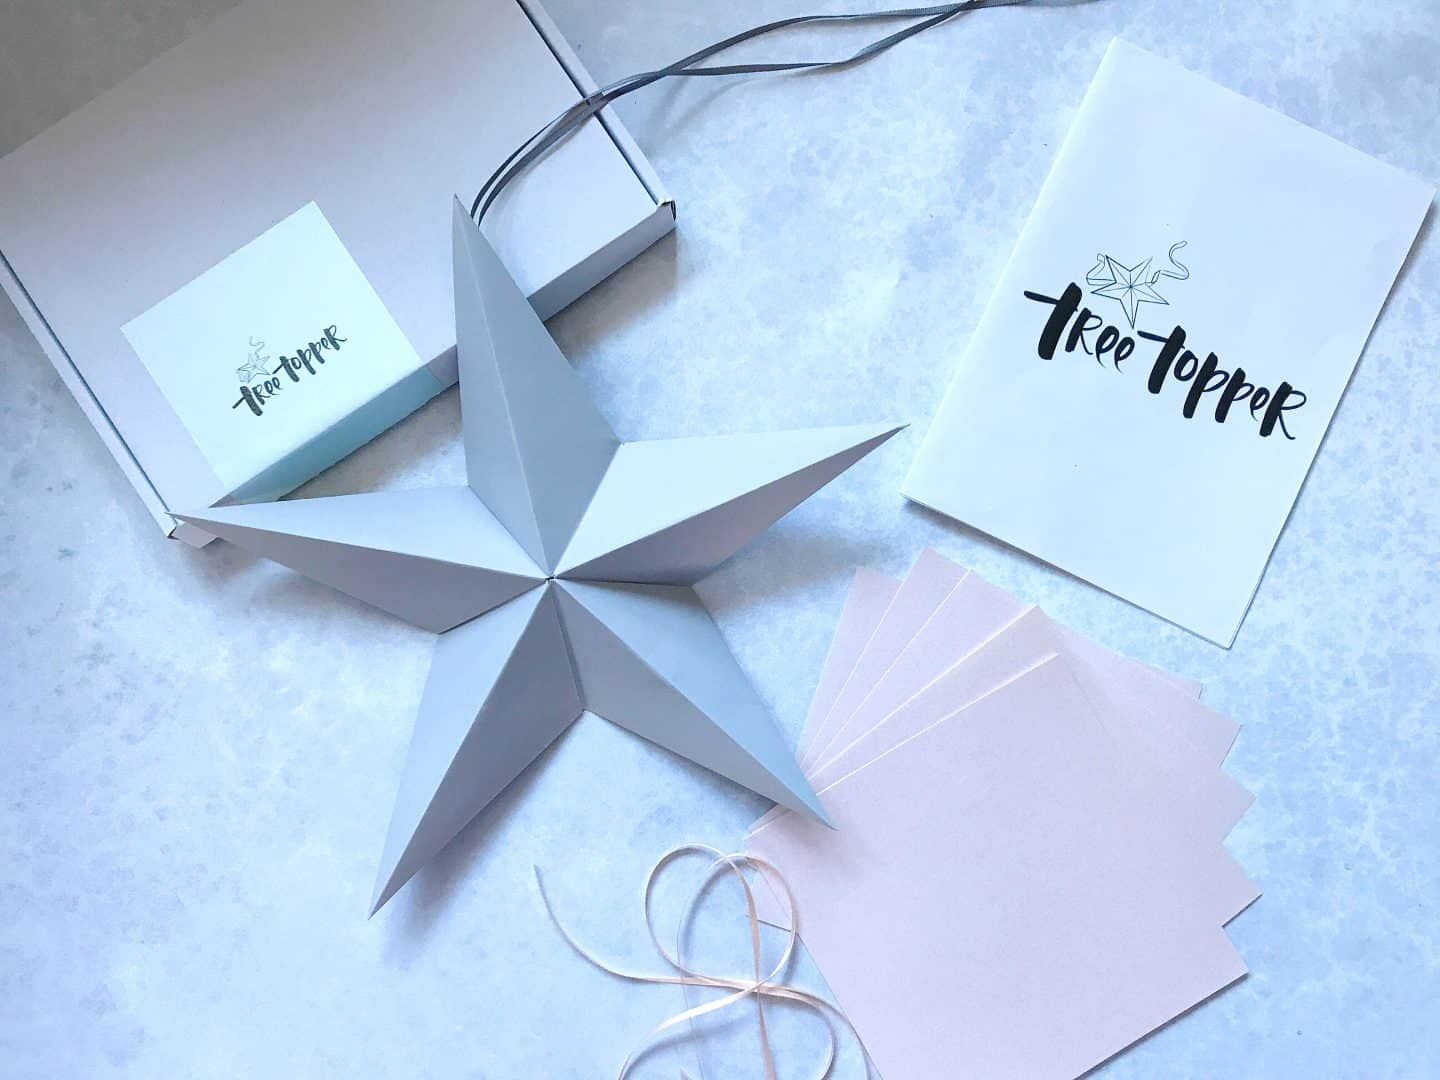 Origami star kit from Origami-Est